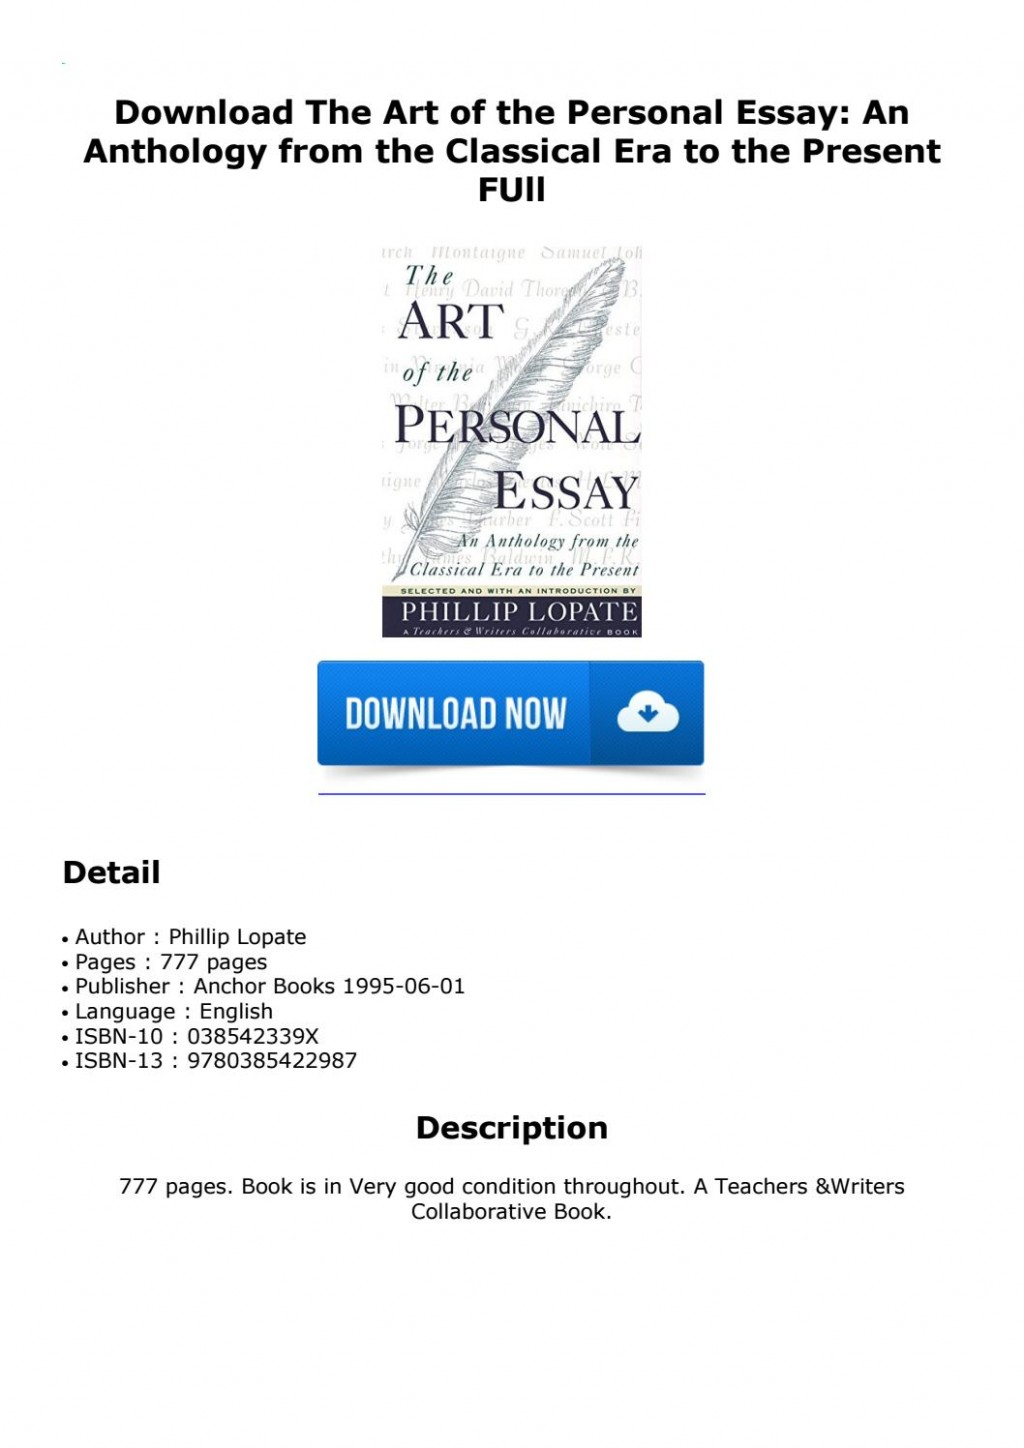 002 Page 1 The Art Of Personal Essay Beautiful Phillip Lopate Table Contents Sparknotes Large